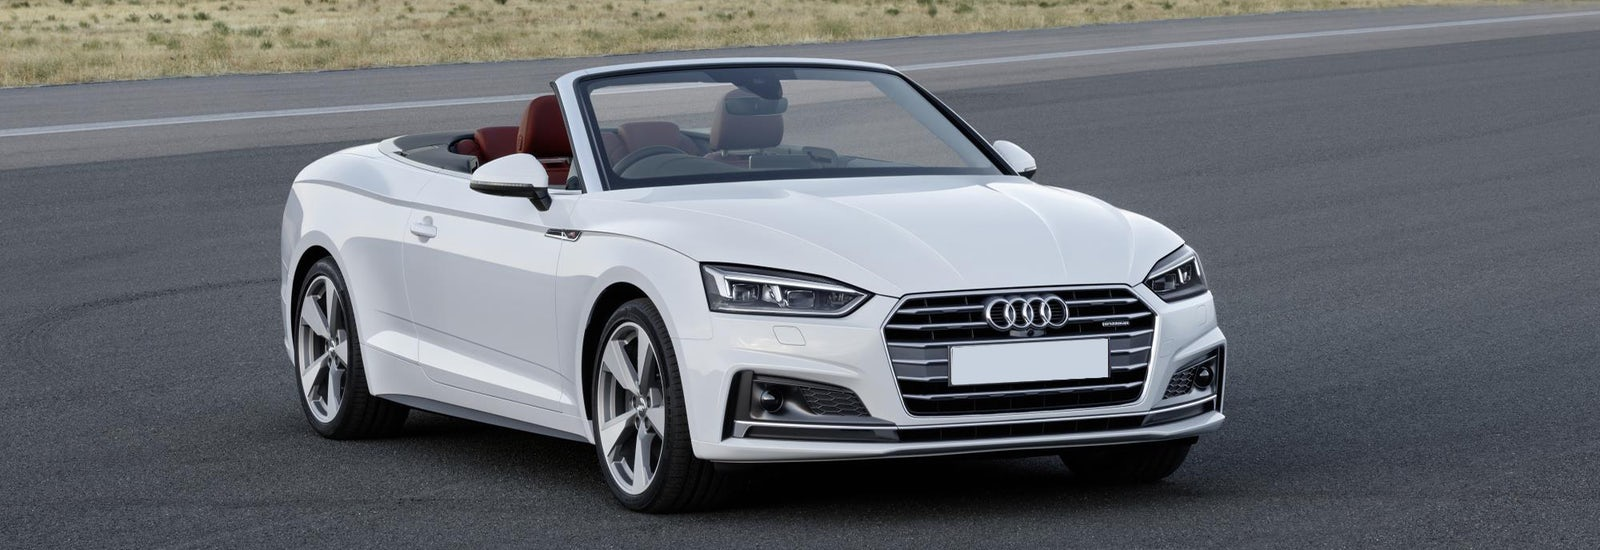 The best 4 seater convertibles & cabriolets on sale | carwow